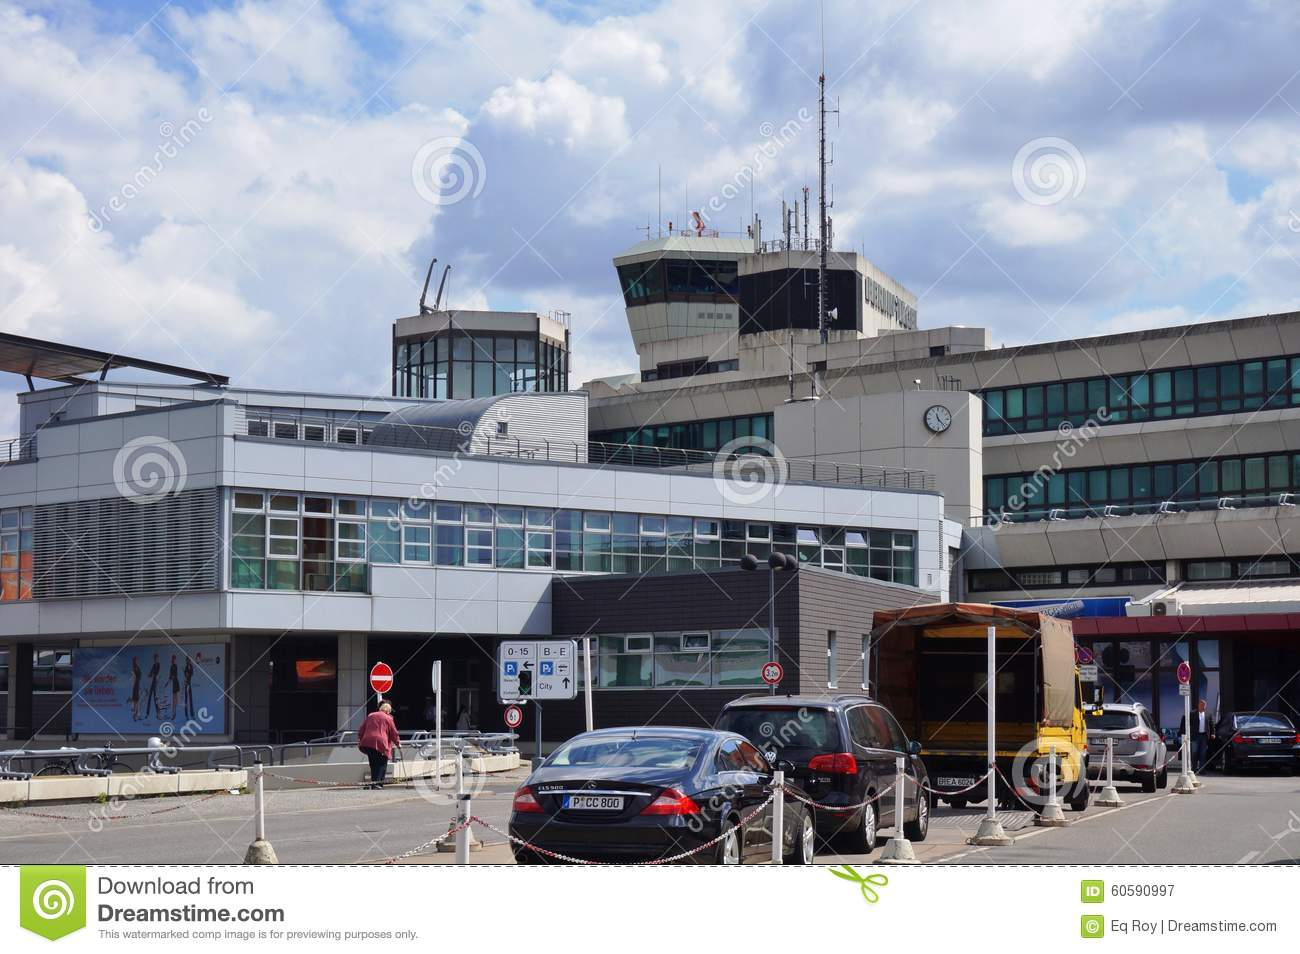 Flughafen Tegel Gate C The Berlin Tegel Otto Lilienthal Airport Txl In Berlin Germany